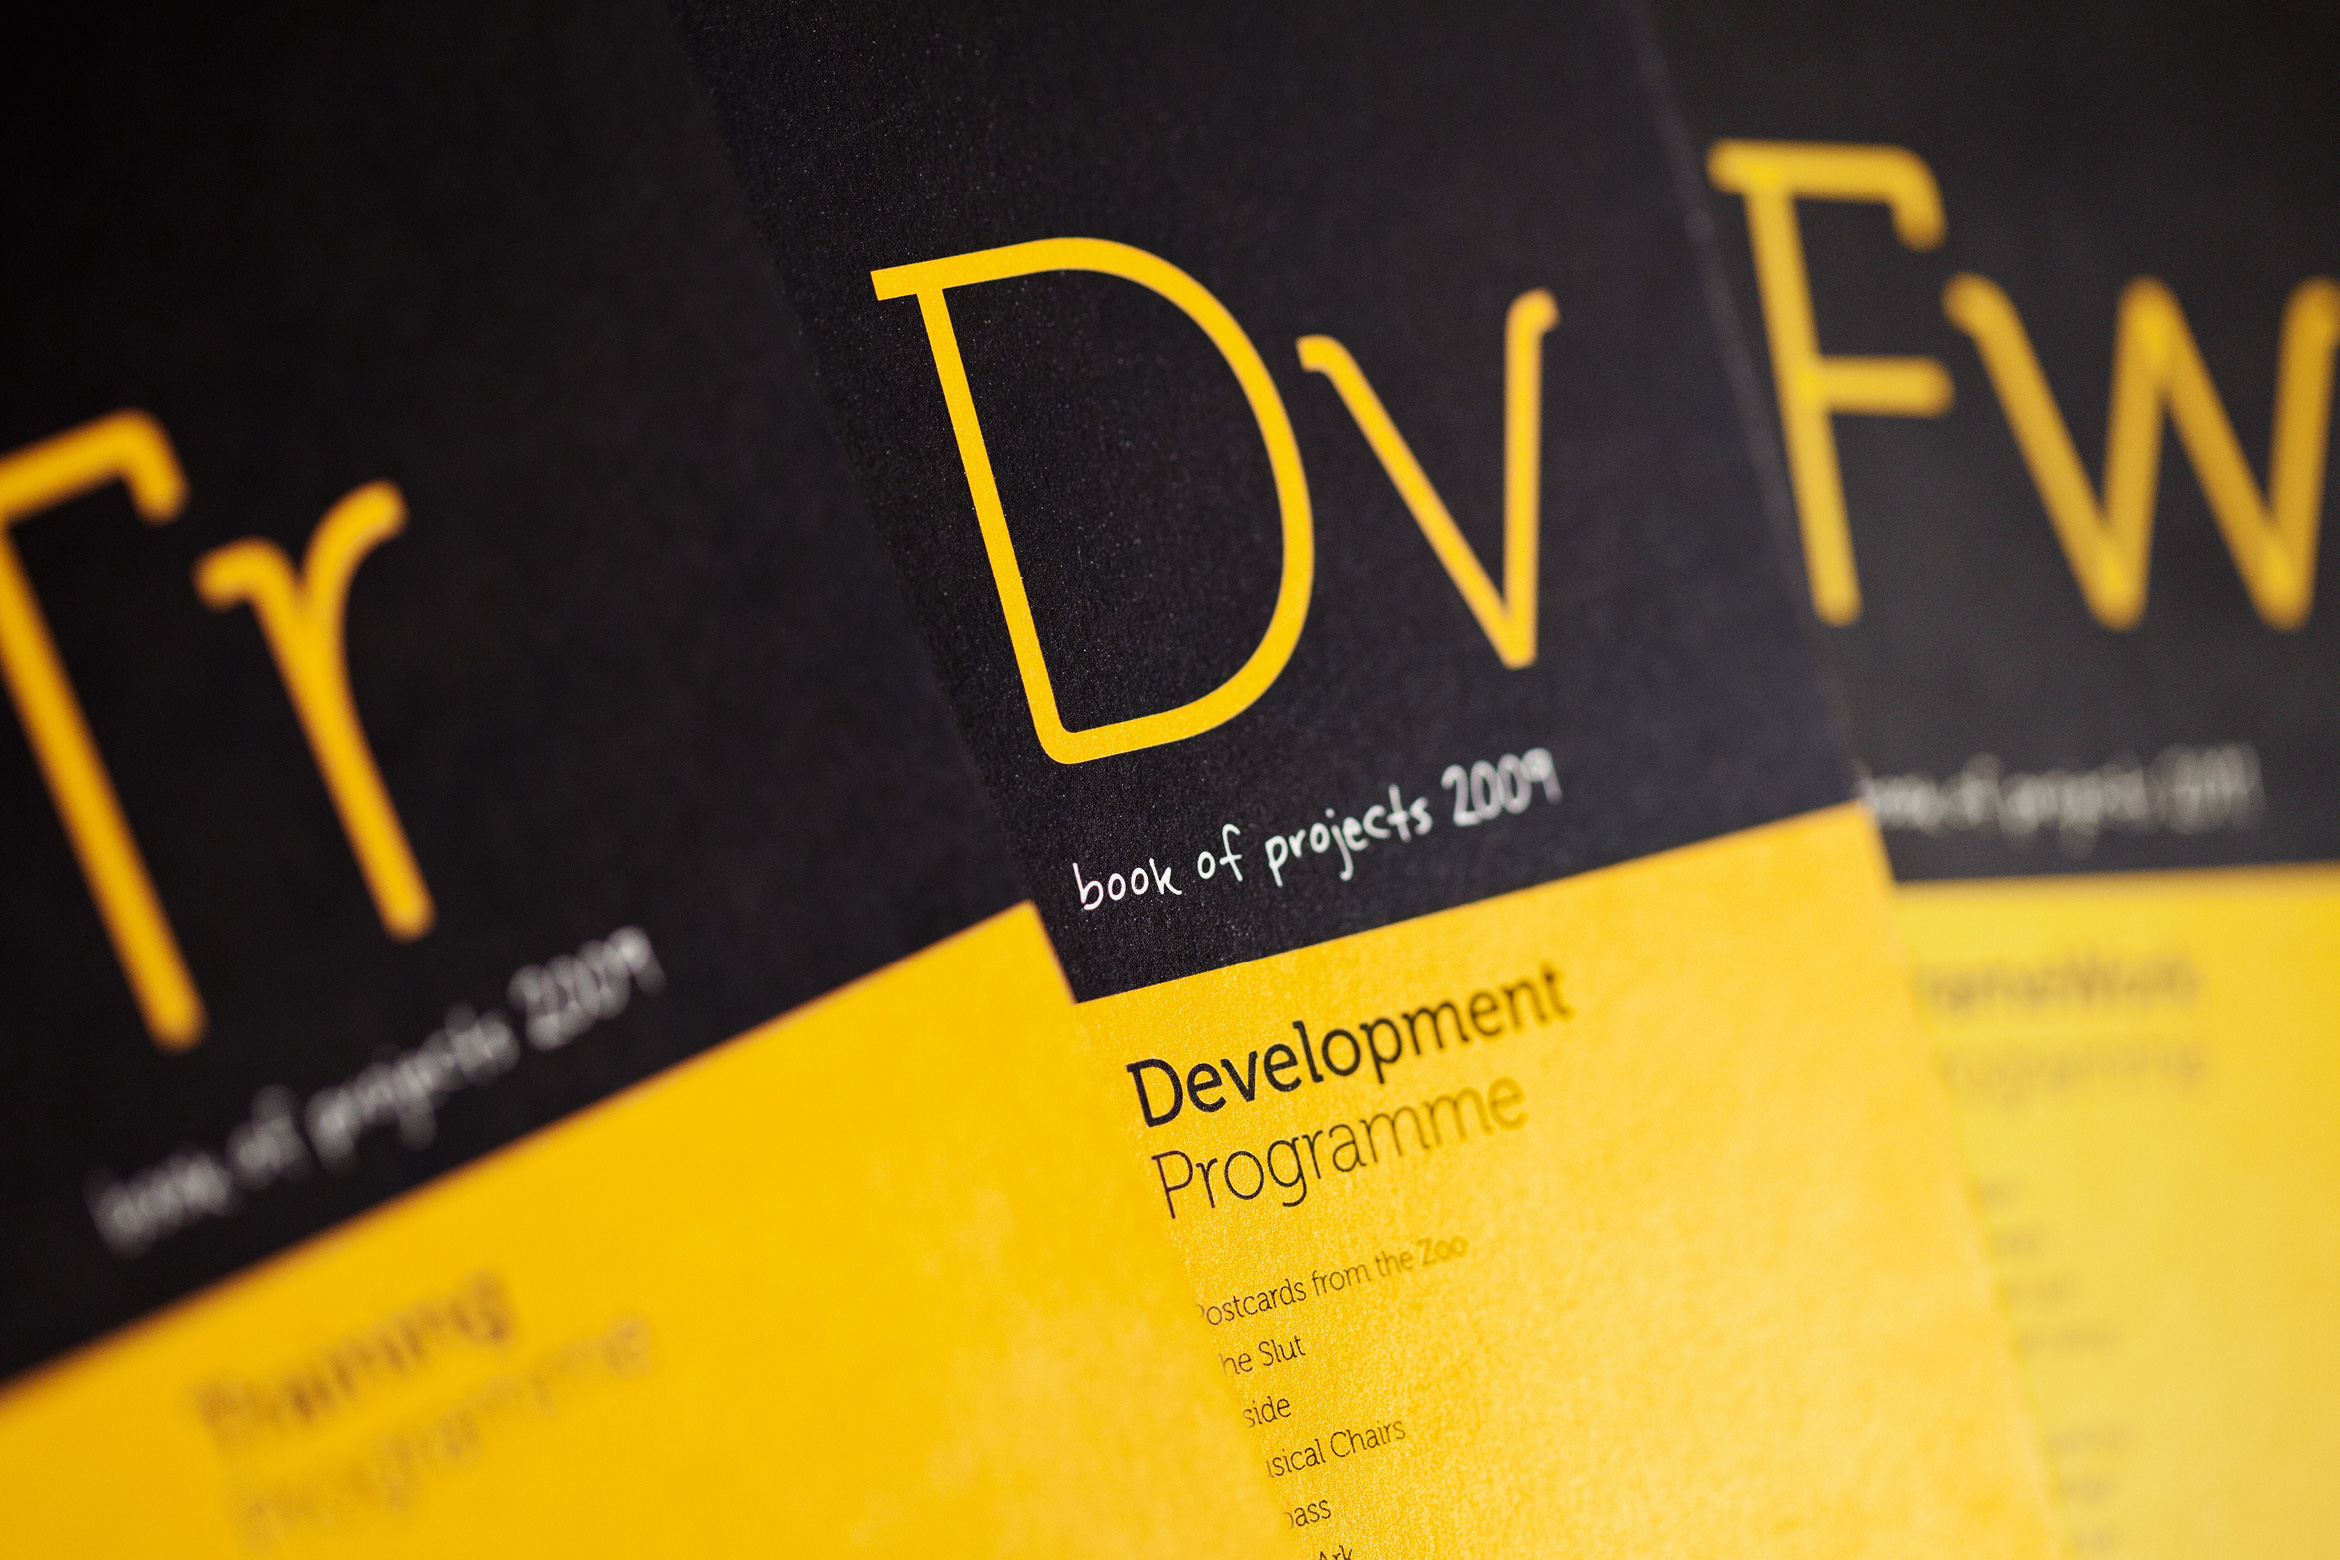 Books of projects covers detail